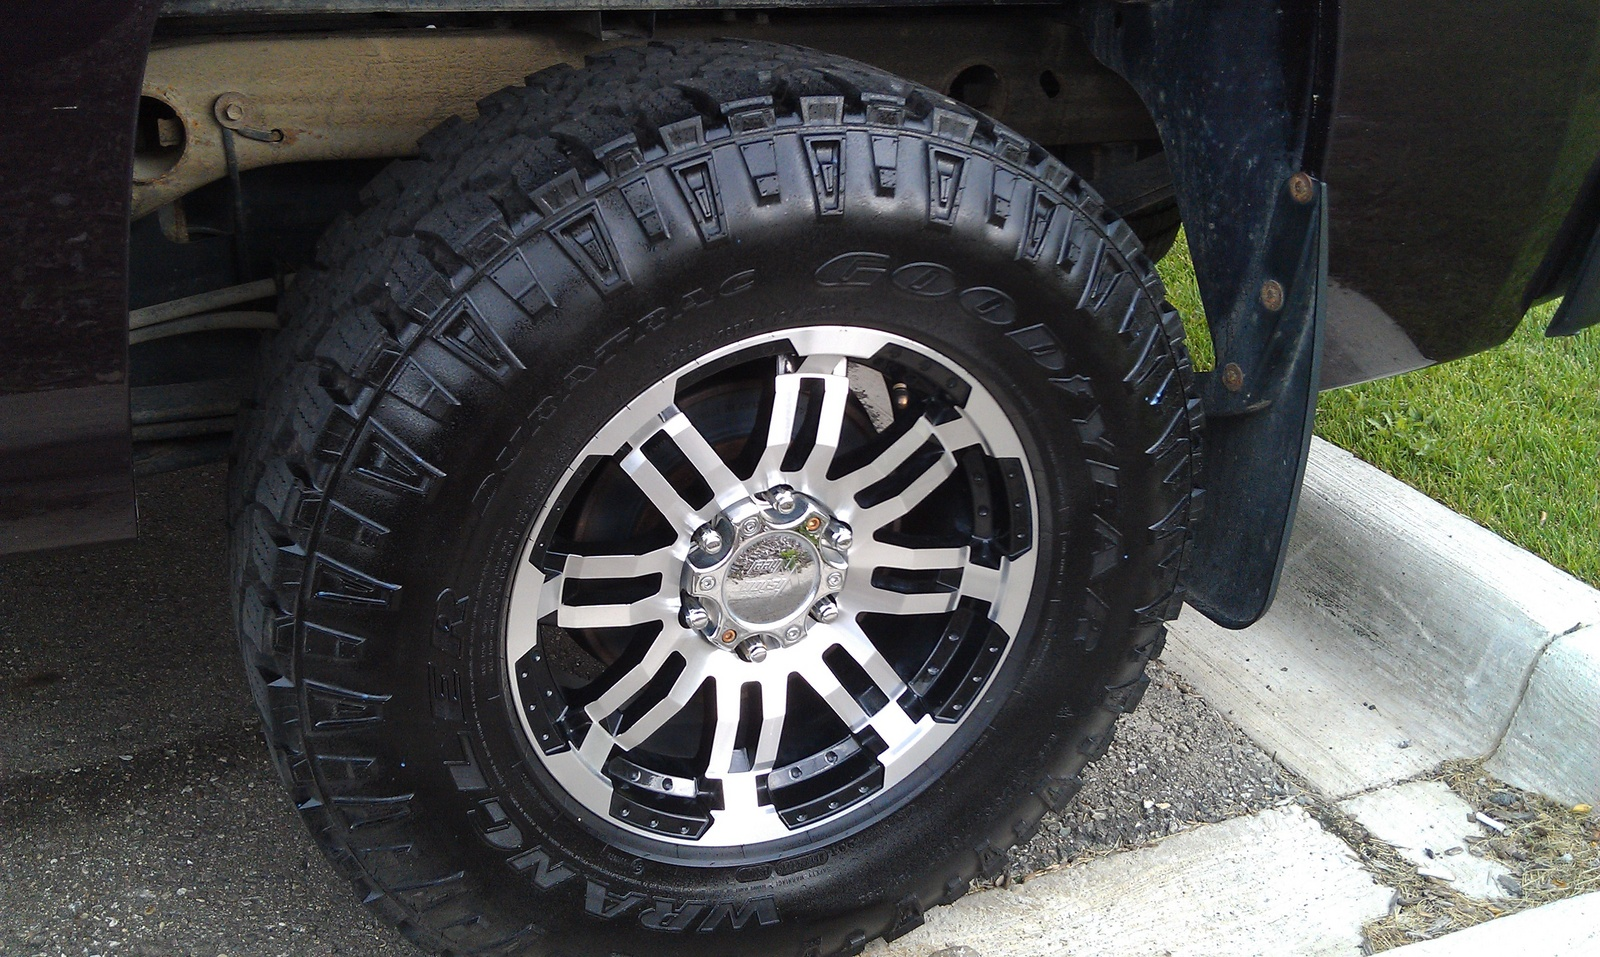 f250 largest tire size ford truck enthusiasts forums autos post. Black Bedroom Furniture Sets. Home Design Ideas